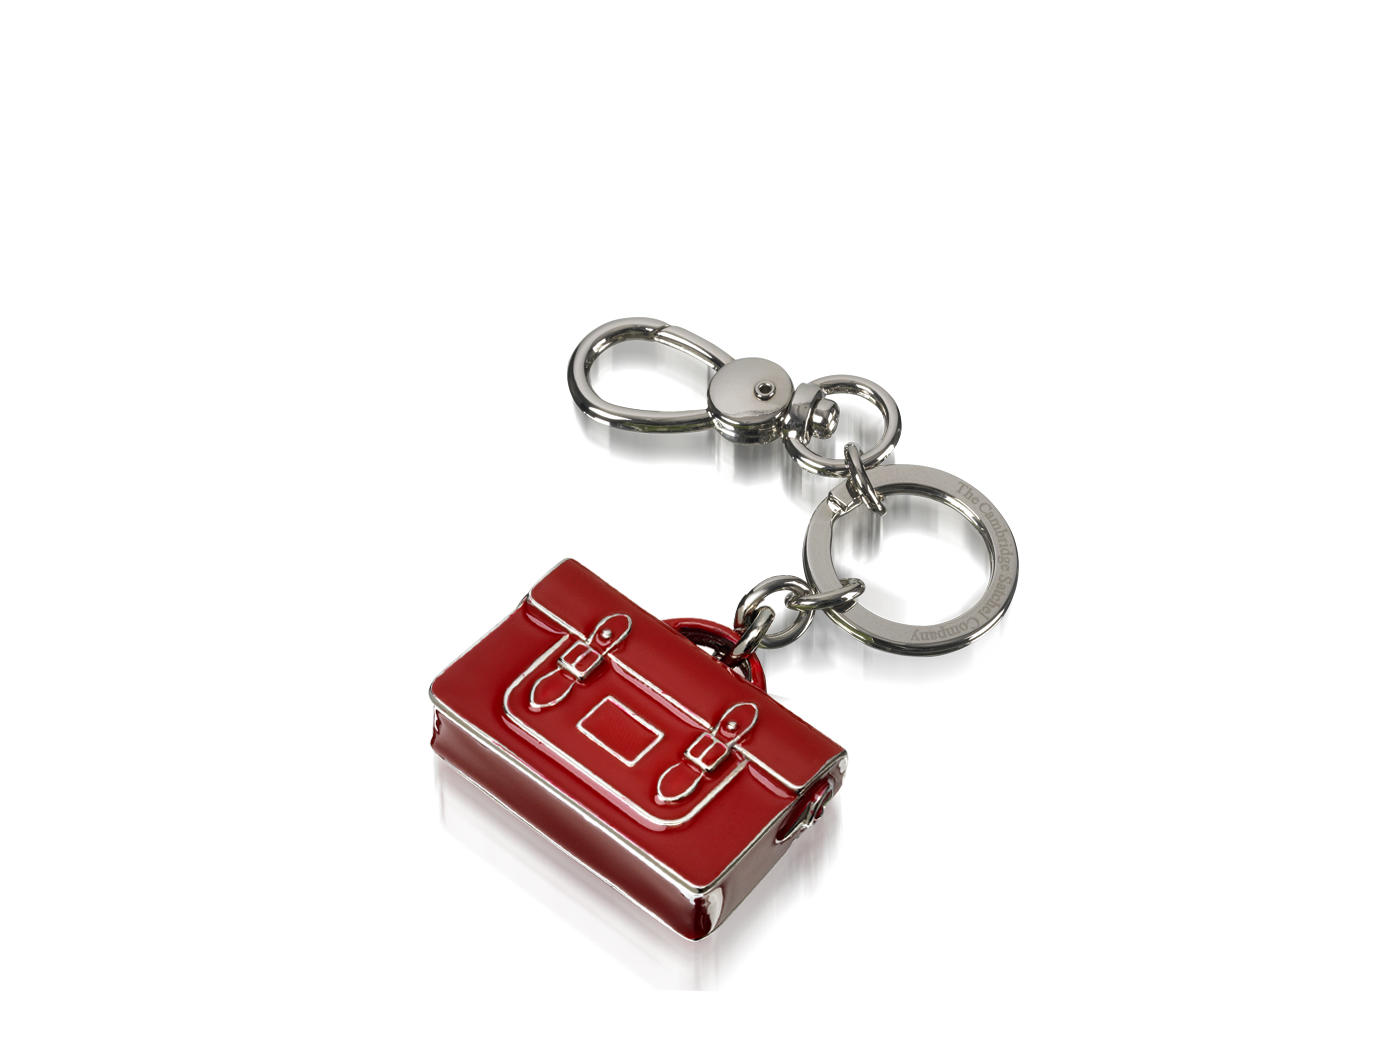 20% Off+Free Red Enamel Keychain@ The Cambridge Satchel Company, Dealmoon Golden Week Exclusive!